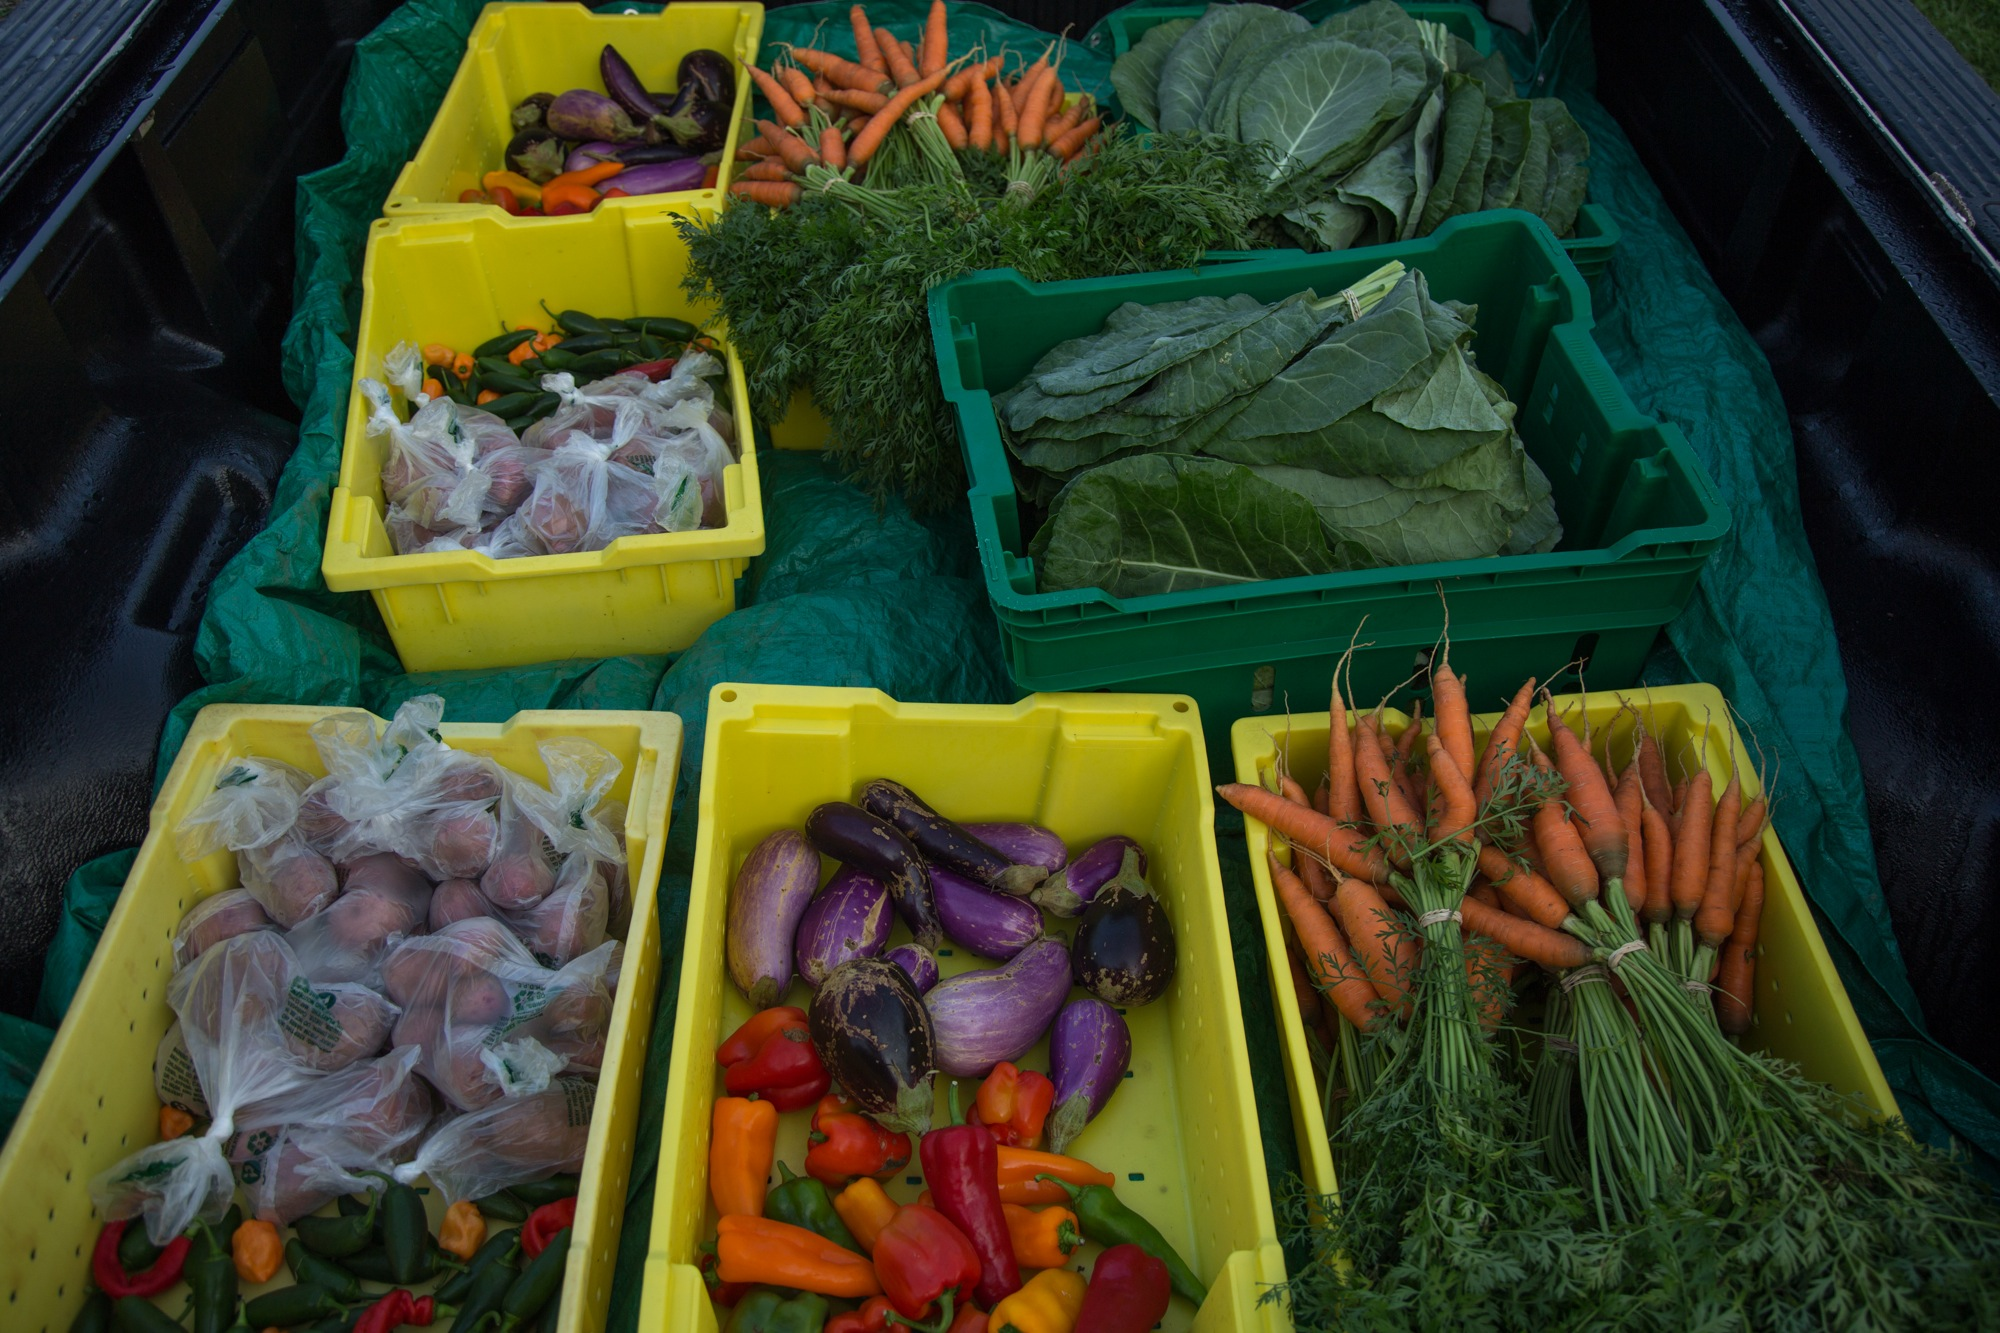 All produce grown at the Lankenau Hospital's Wellness Farm goes directly to the patients, free of charge, along with tips and recipes for healthy cooking.